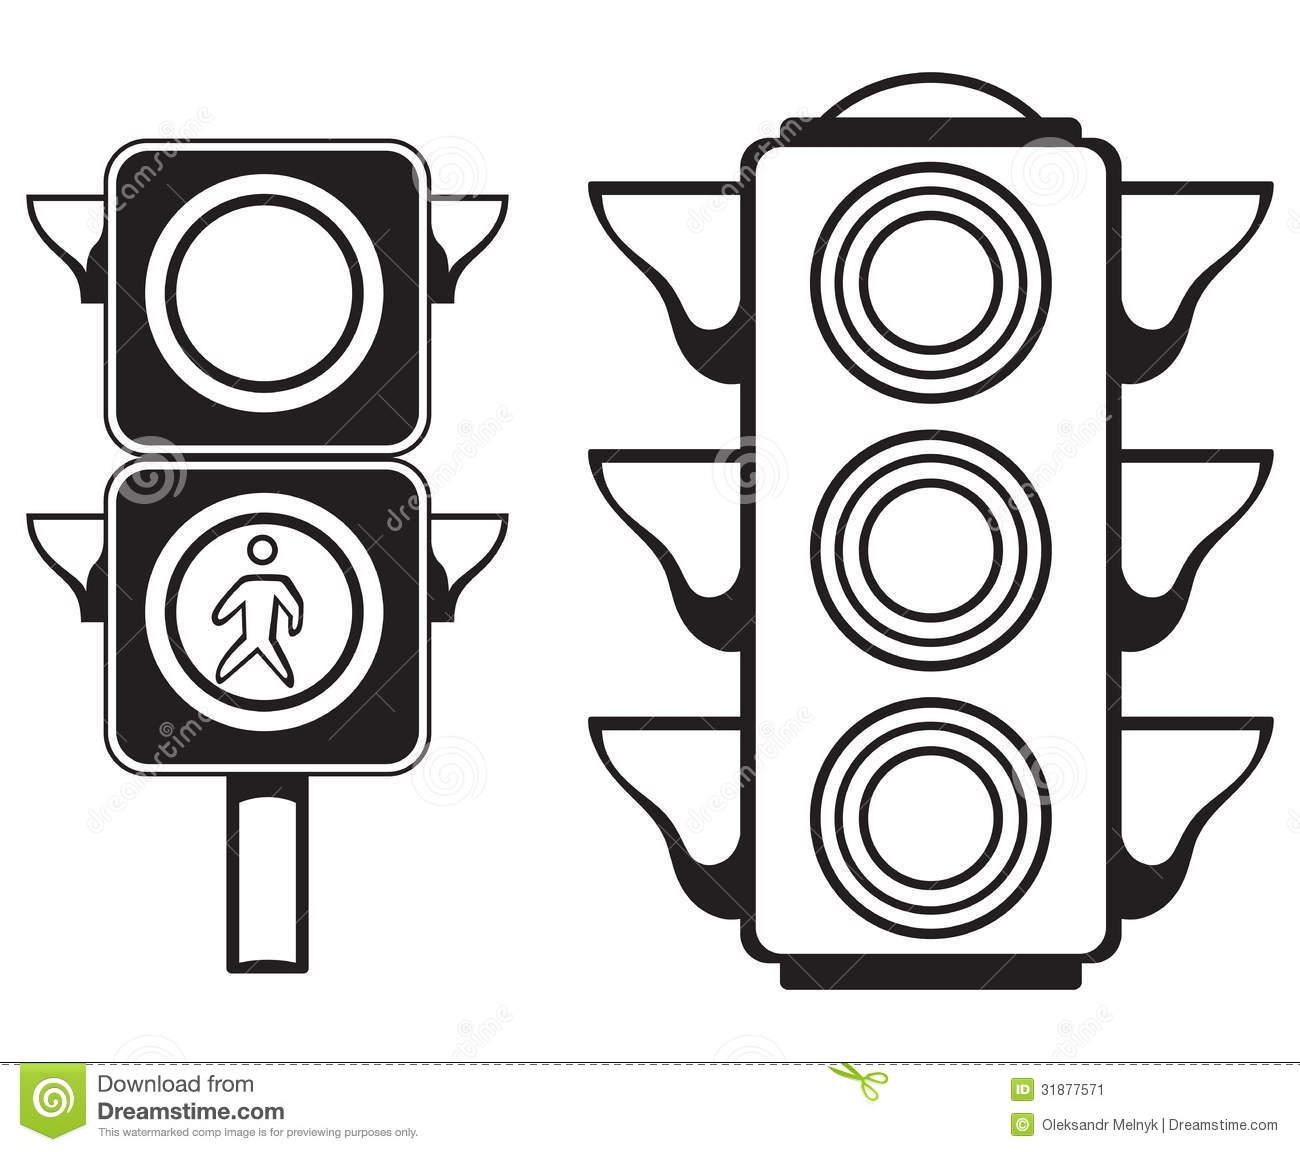 traffic light coloring page - stock image traffic light isolated white background image